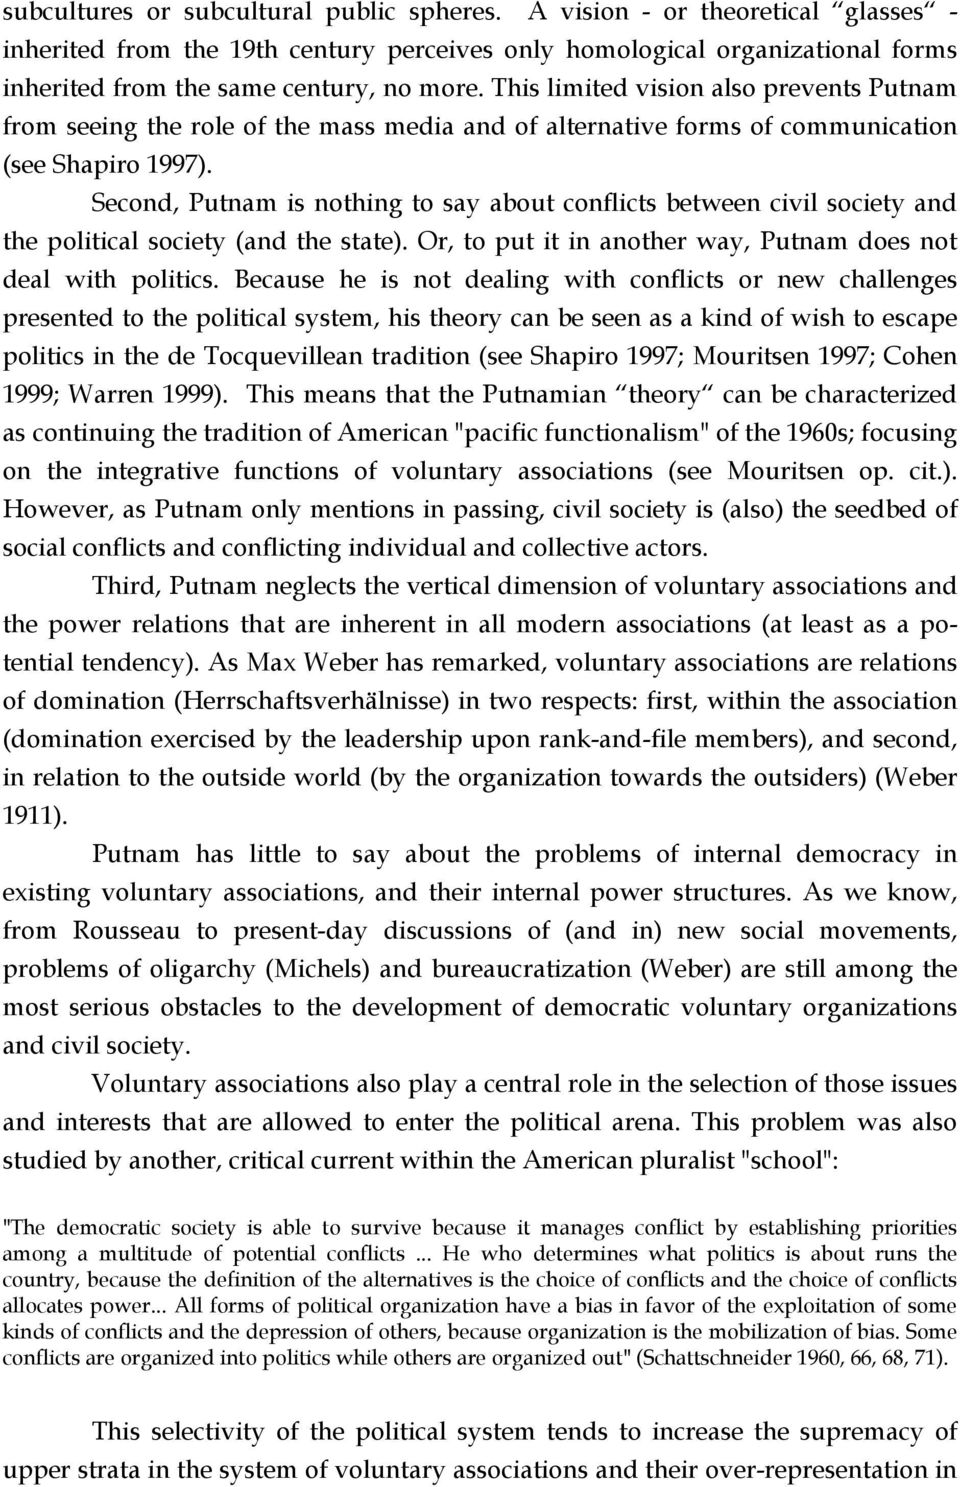 Second, Putnam is nothing to say about conflicts between civil society and the political society (and the state). Or, to put it in another way, Putnam does not deal with politics.